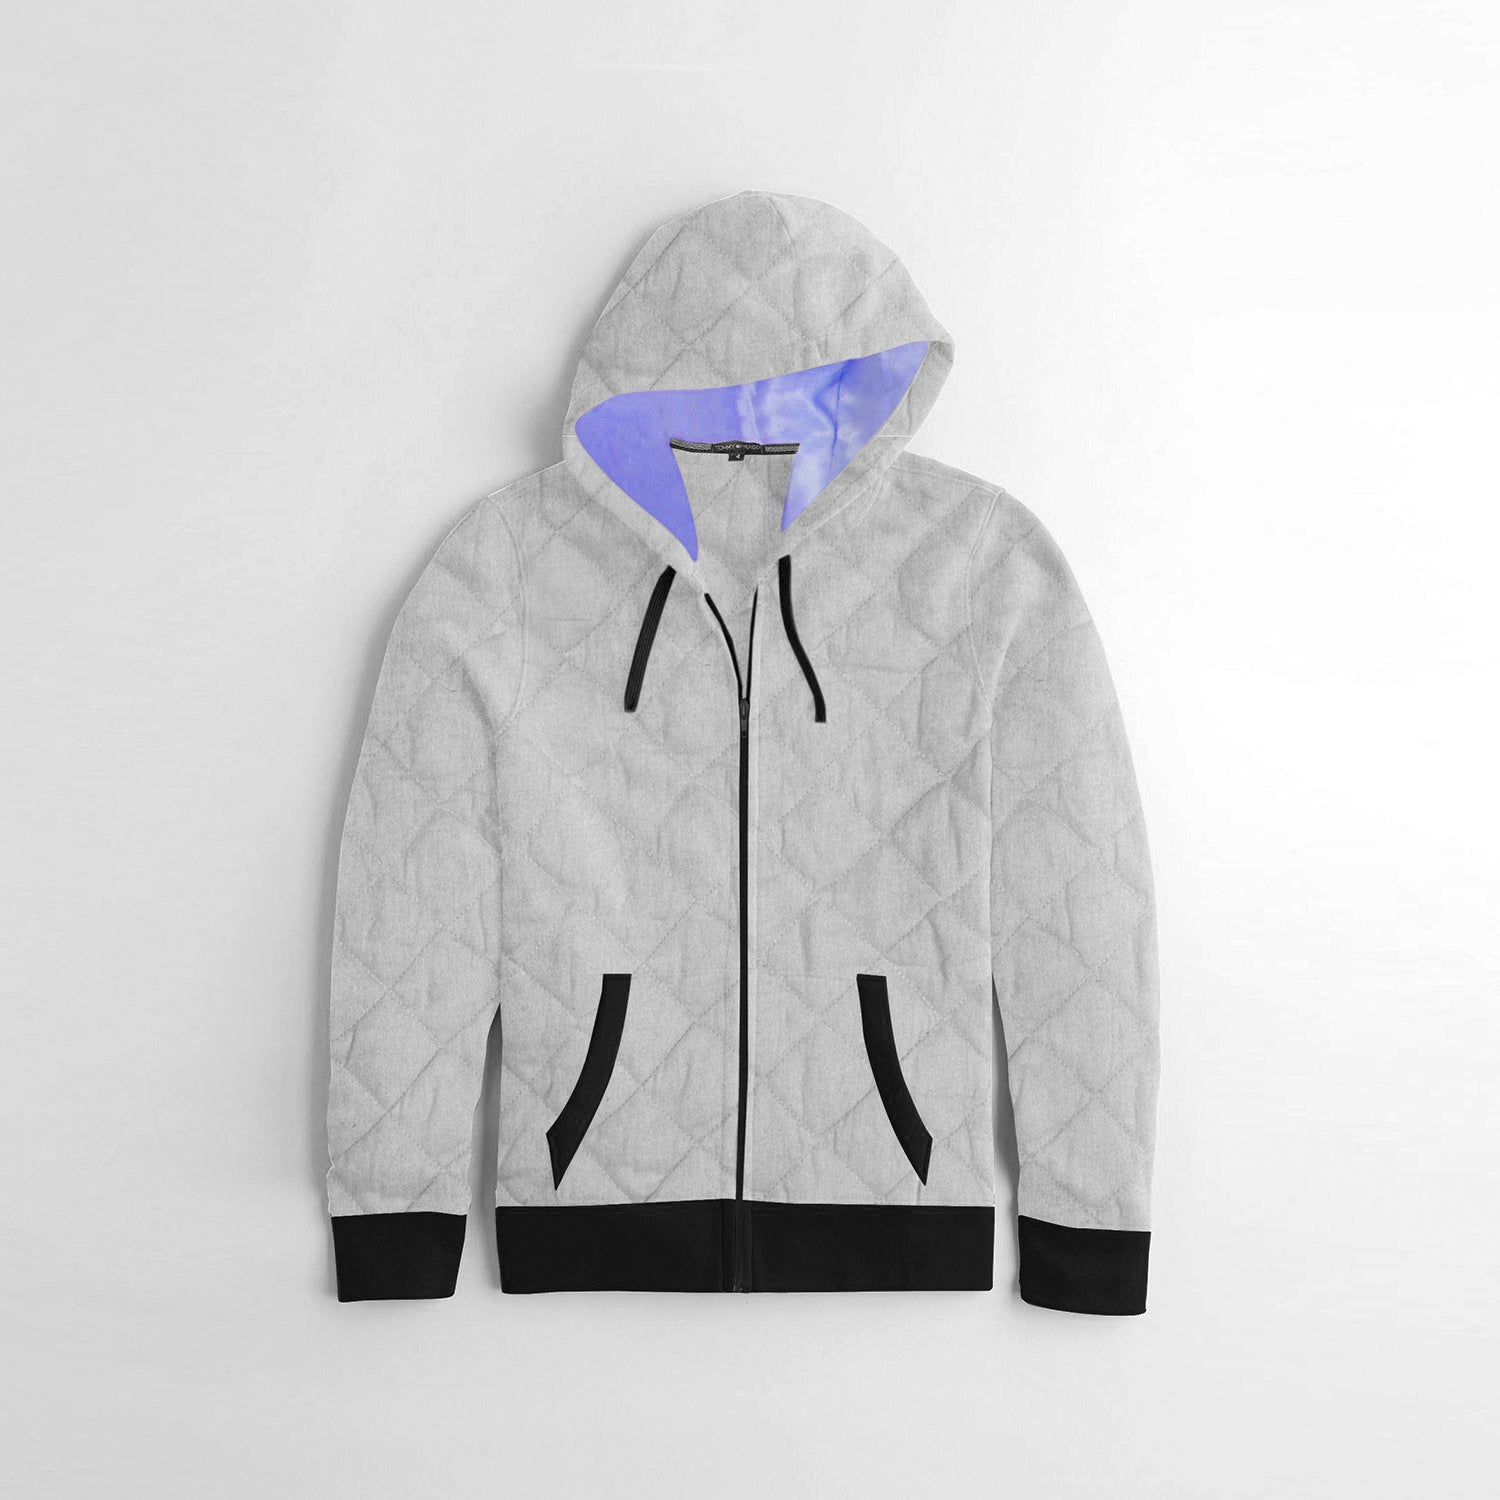 TH Quilted Zipper Hoodie For Kids-Grey & Black-BE10617